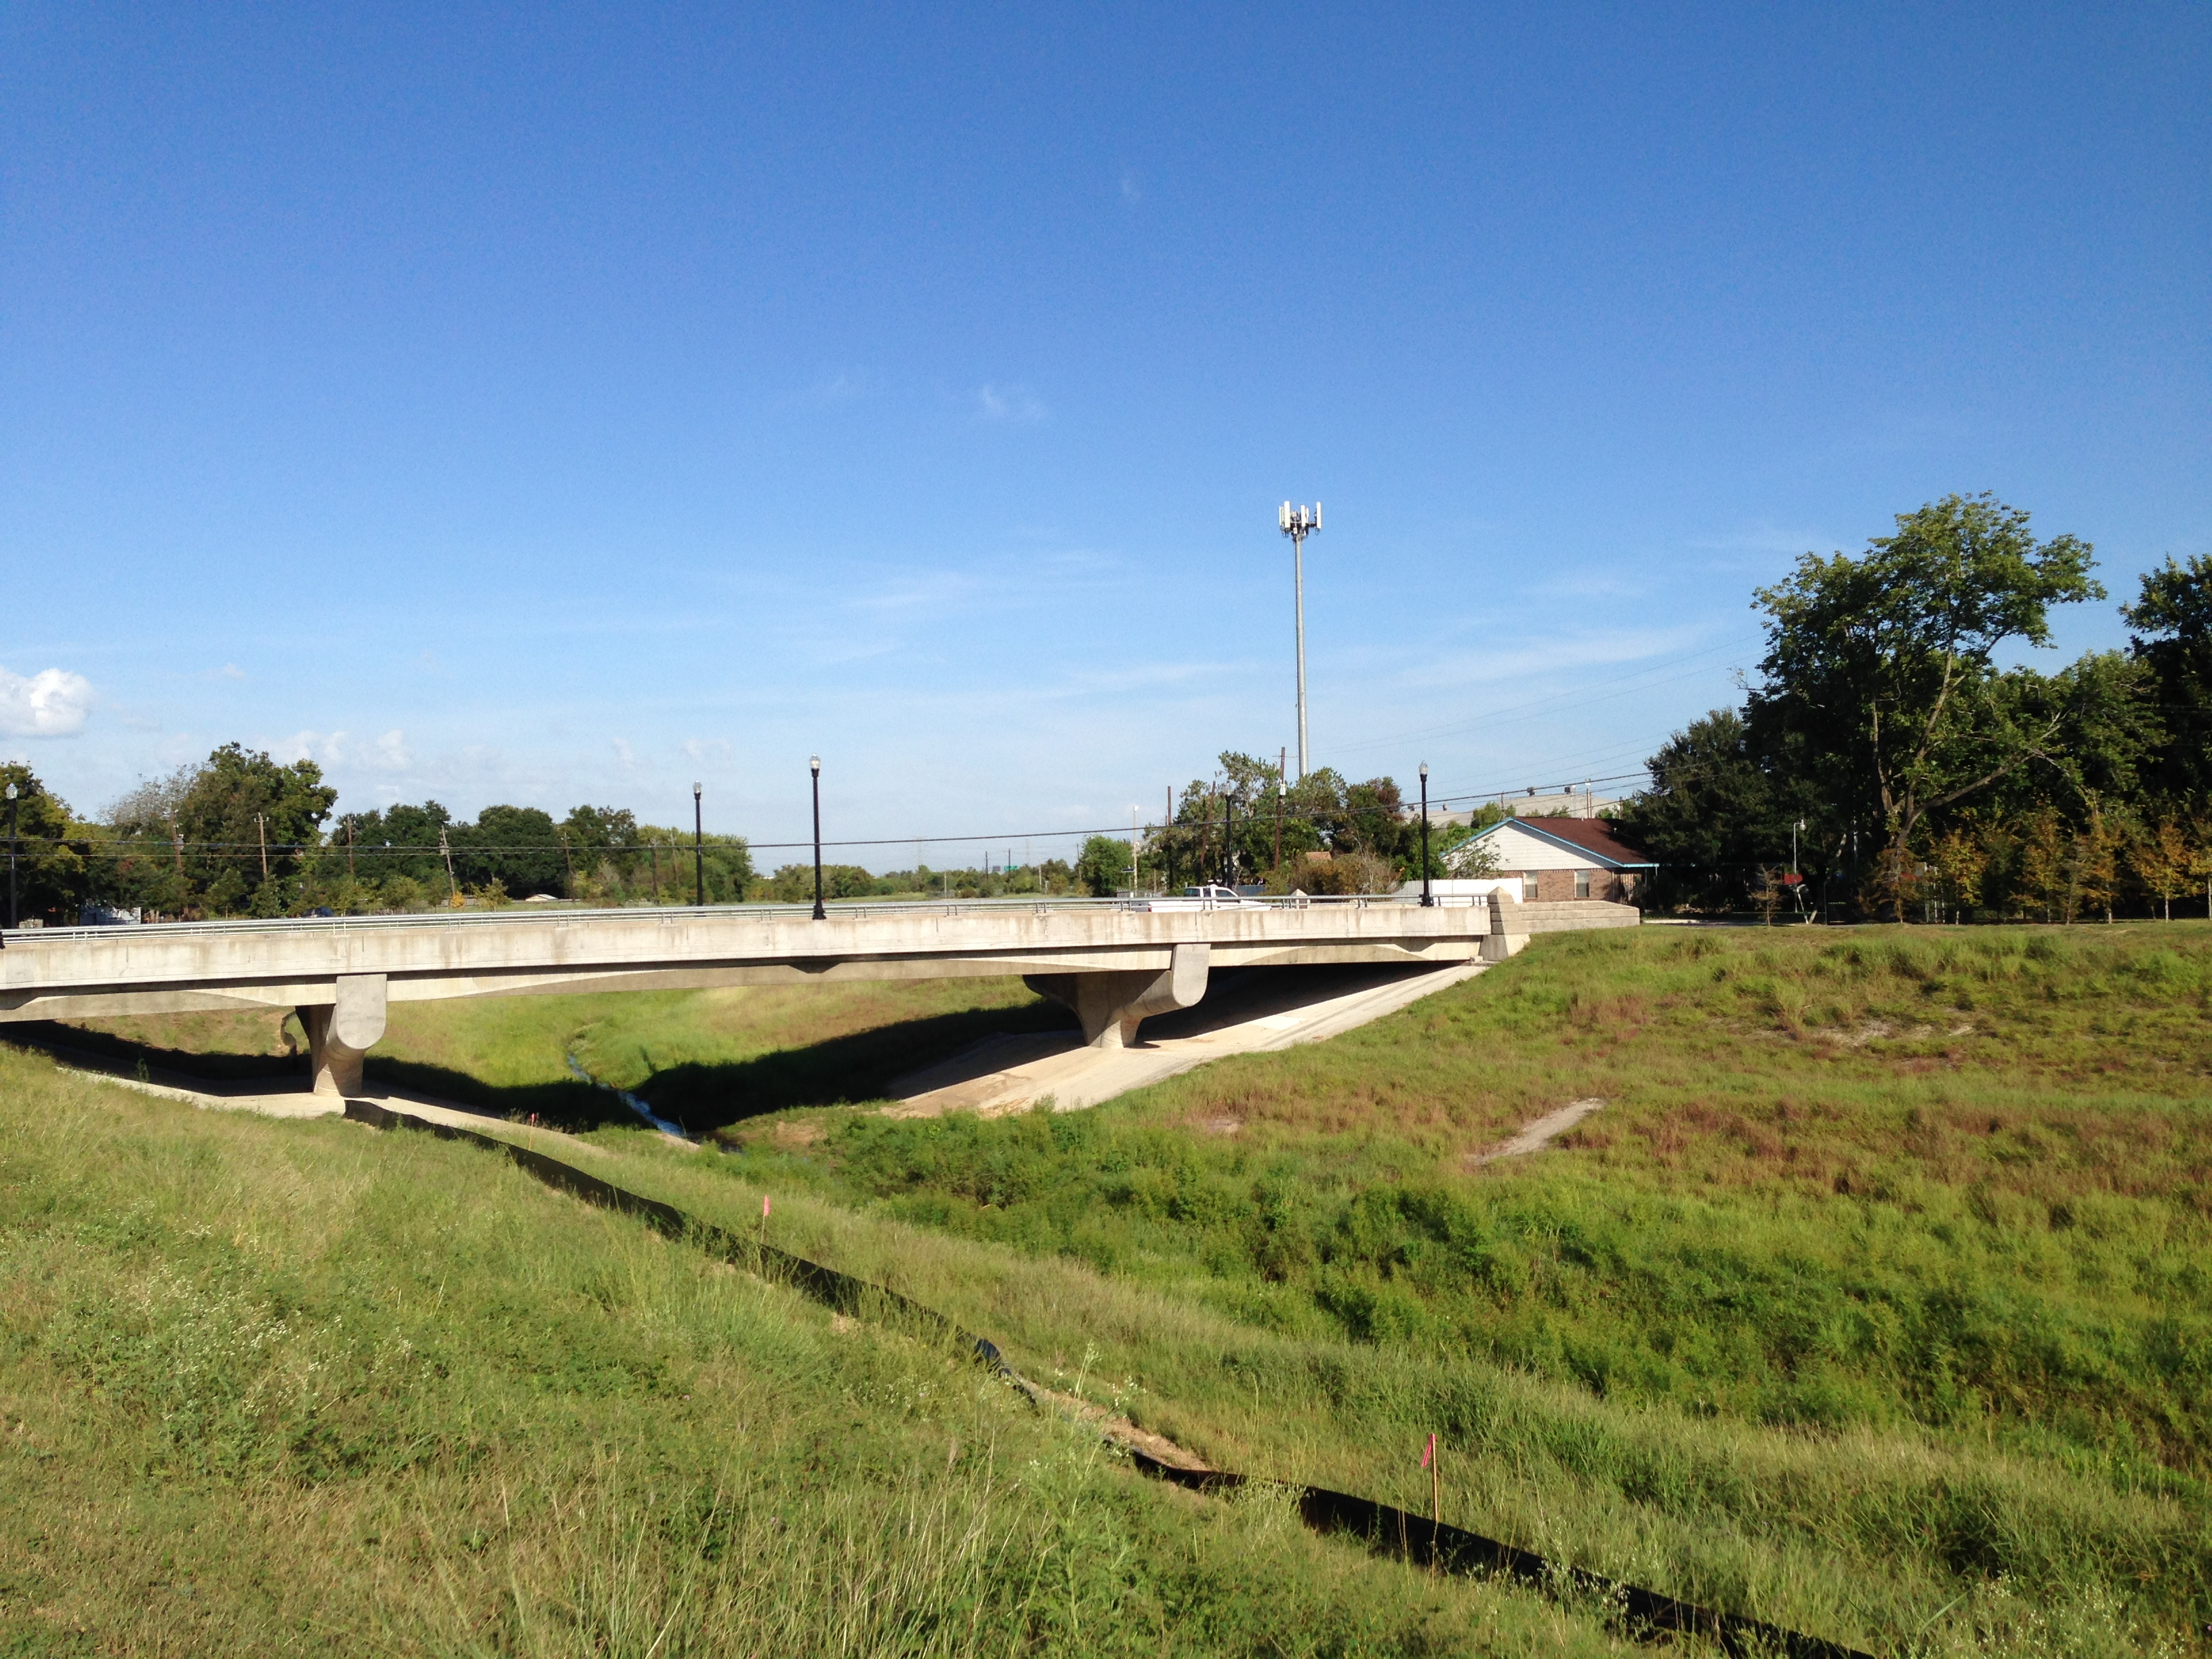 The Sims Bayou Greenway will be 1.8 miles long and will connect Heatherbrook Drive, in southwest Houston, with Hillcroft Avenue.